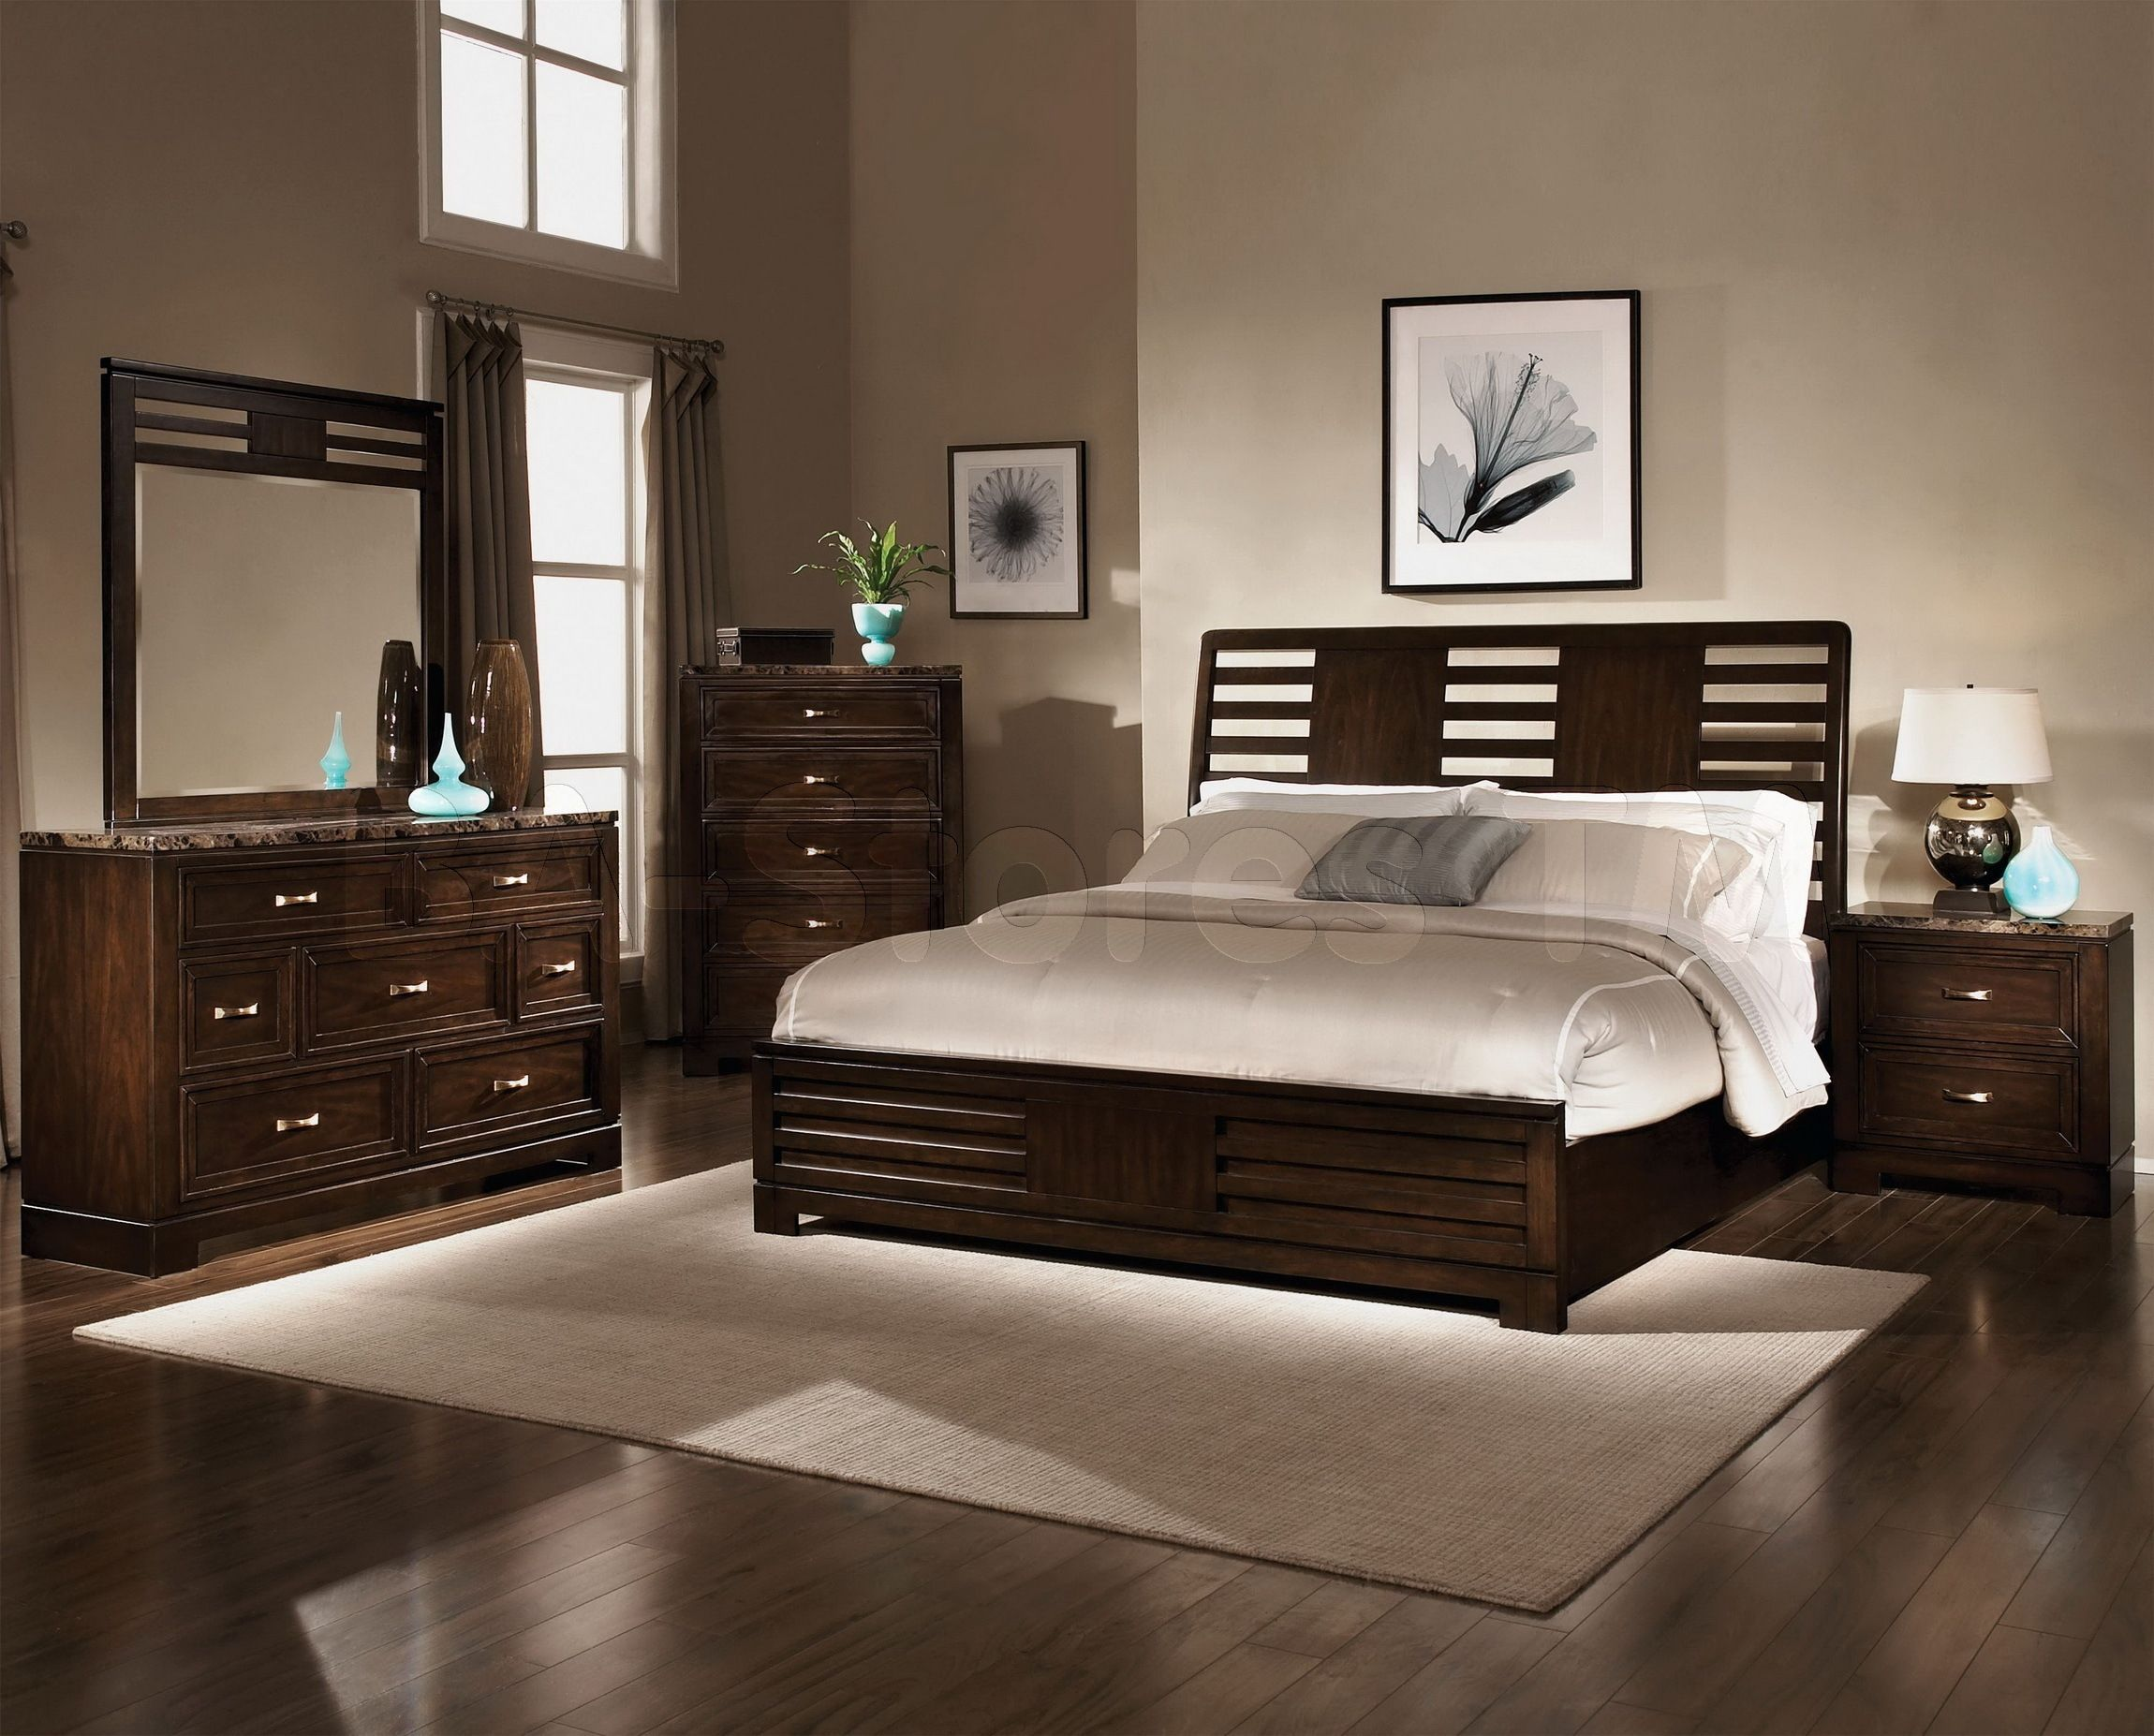 Luxury Bedroom Decorating Ideas Dark Brown Dressing Table Modern Brown Furniture Bedroom Master Bedroom Furniture Dark Bedroom Furniture